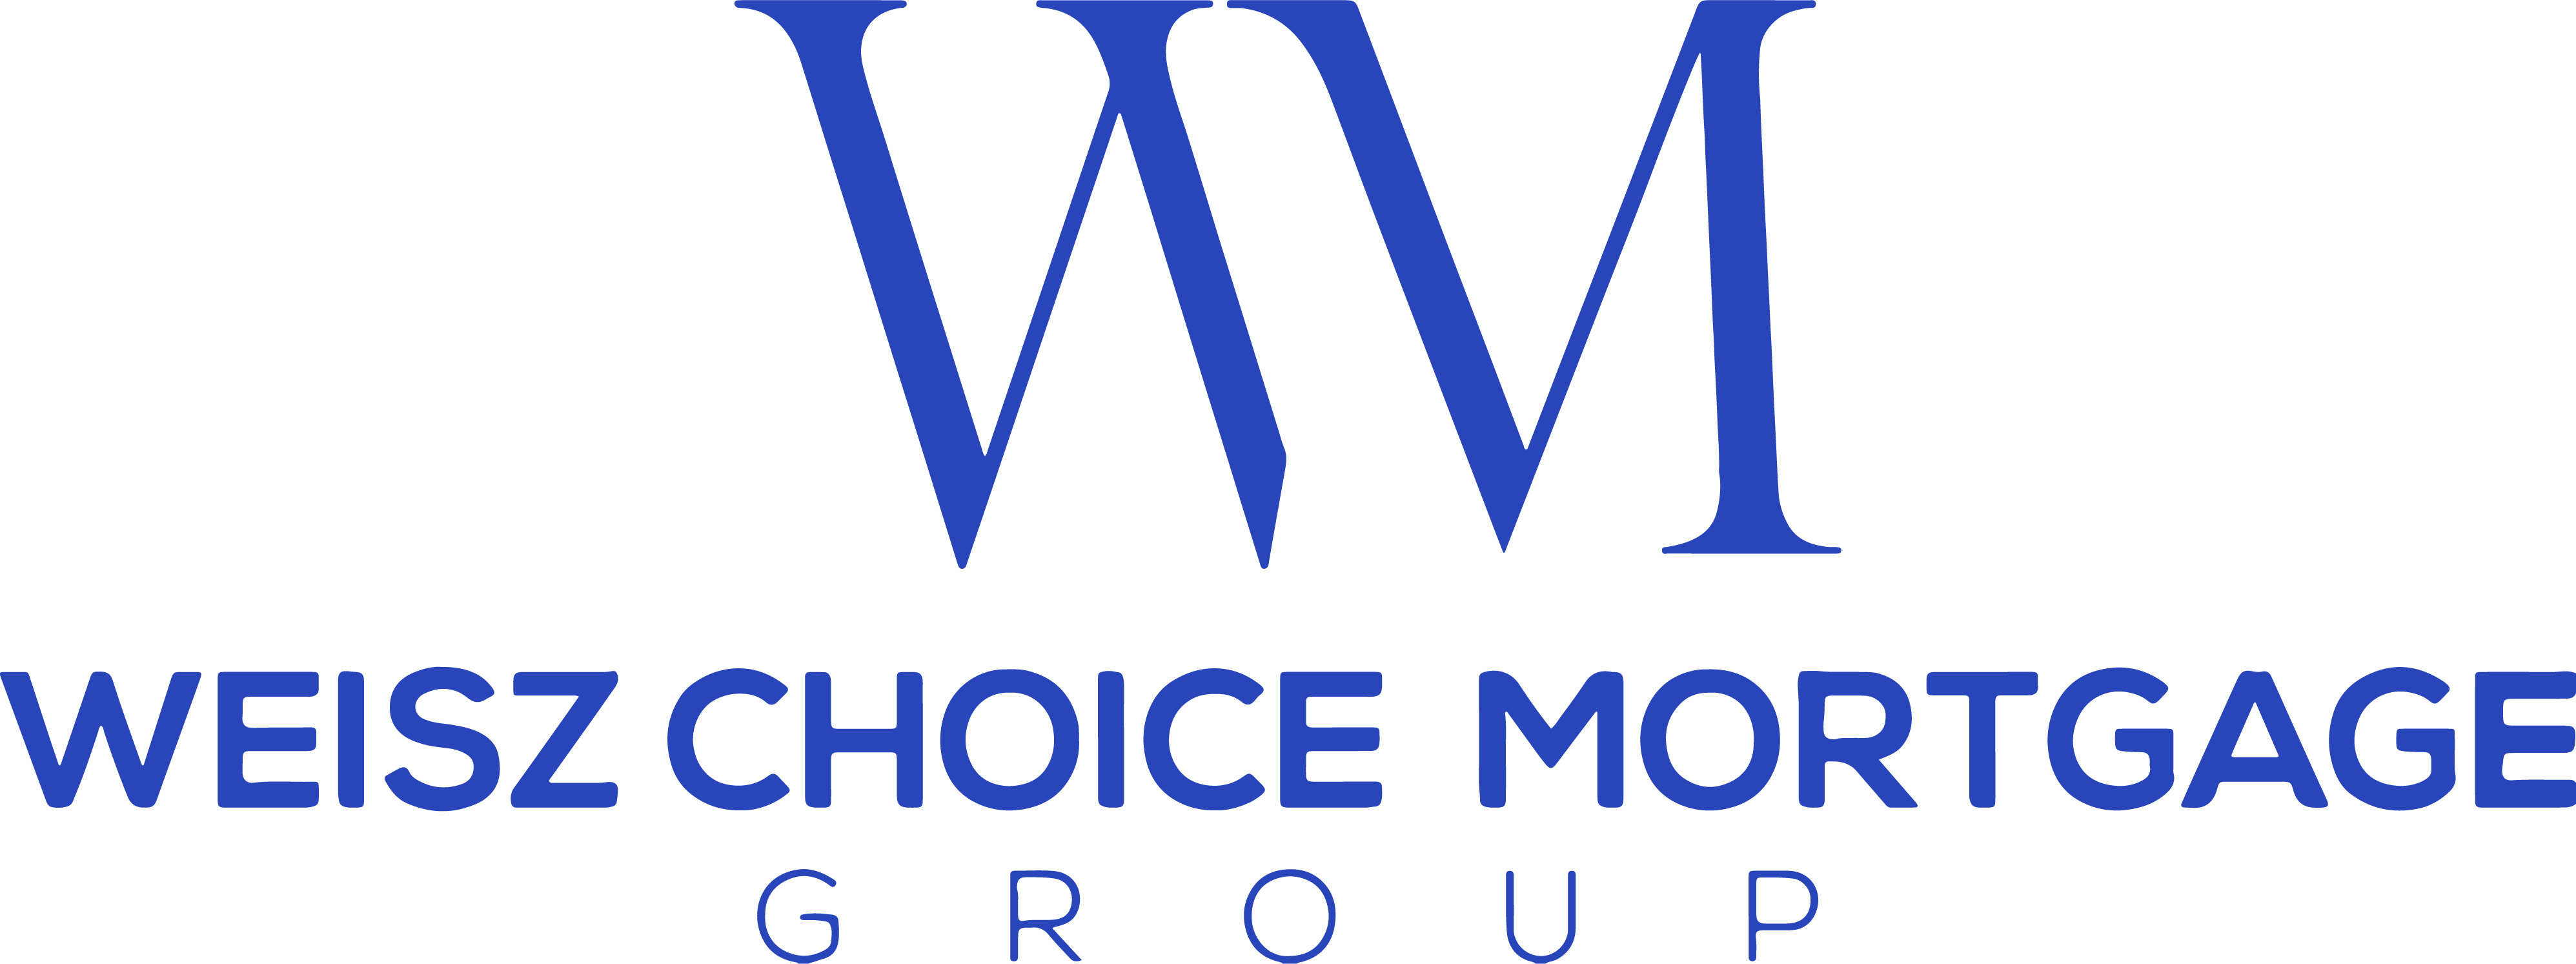 Weisz Choice Mortgage Group